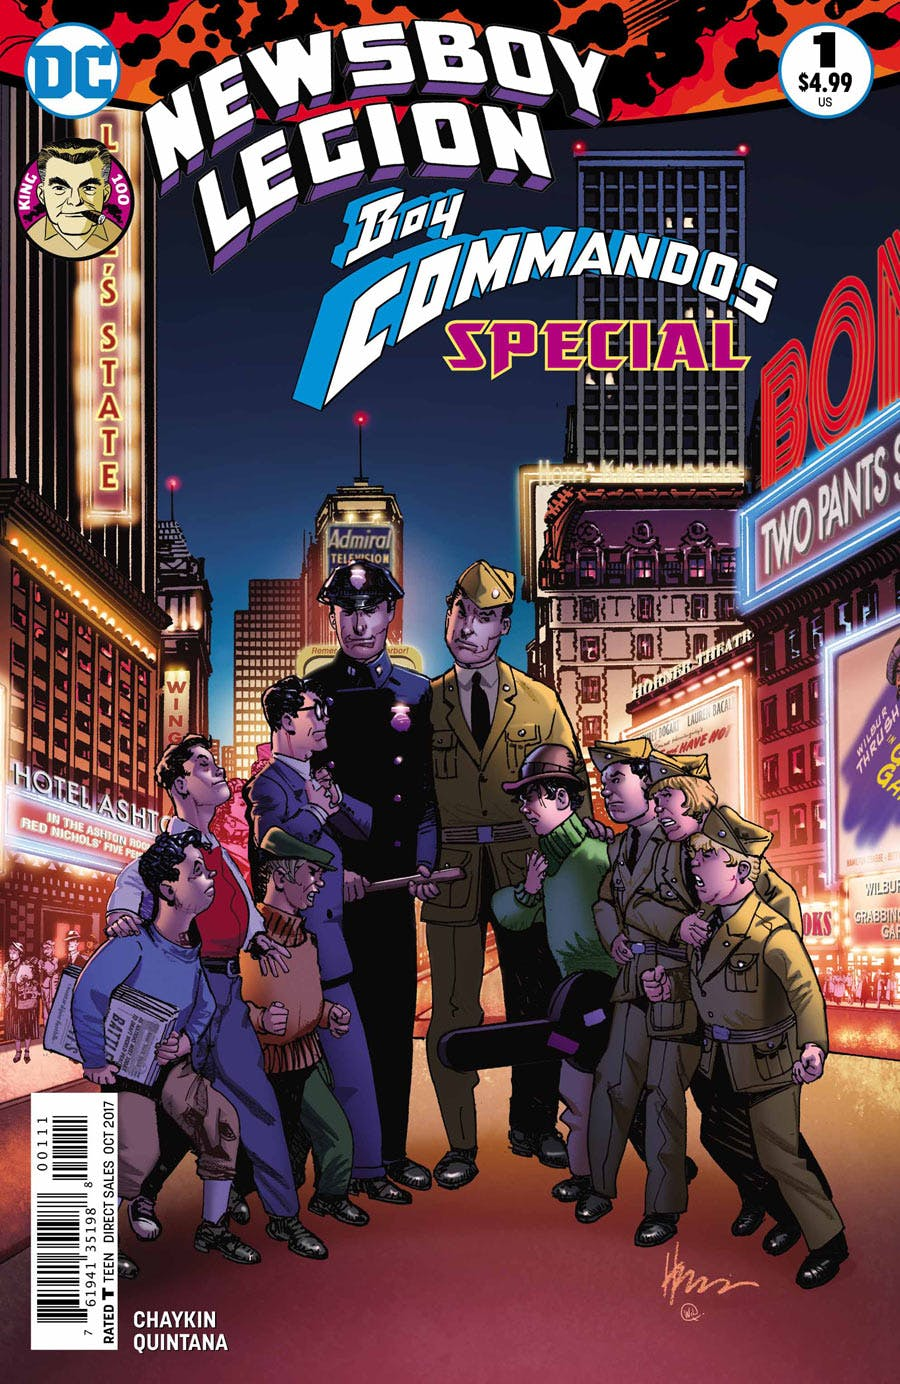 Newsboy Legion/Boy Commandos Special Vol 1 1